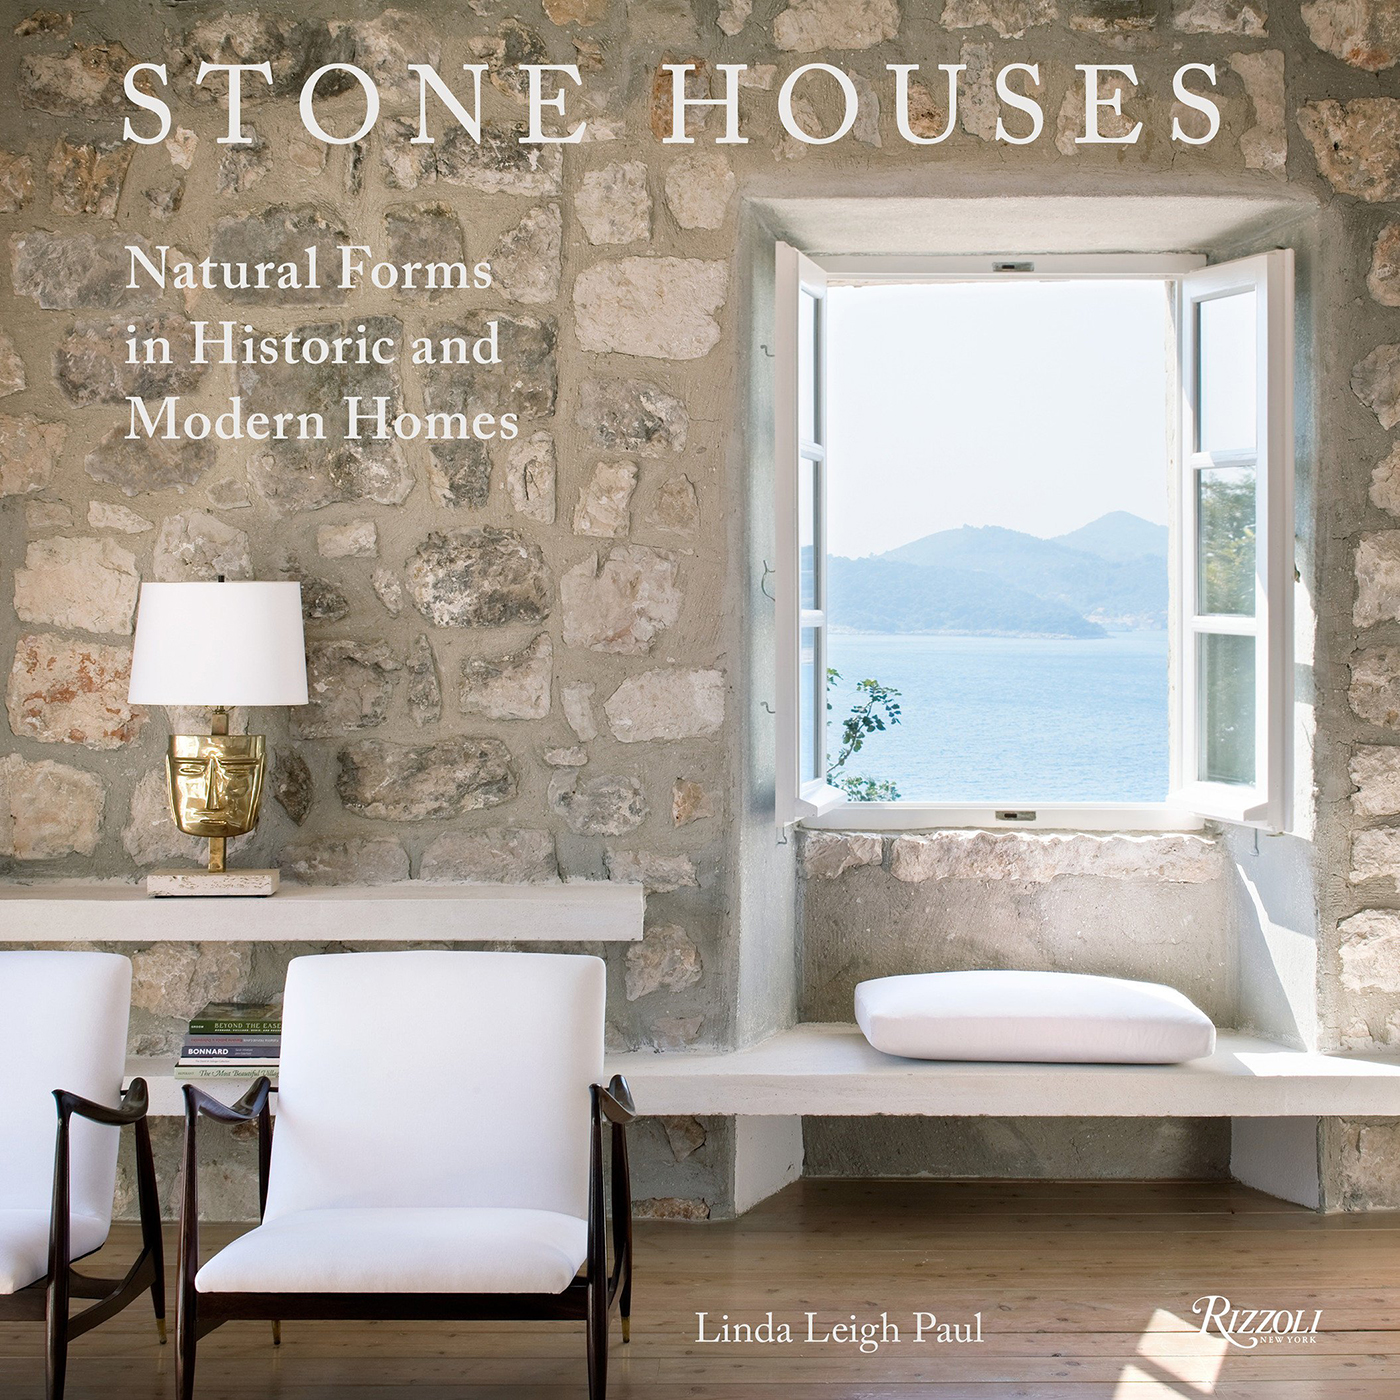 Stone Houses publications